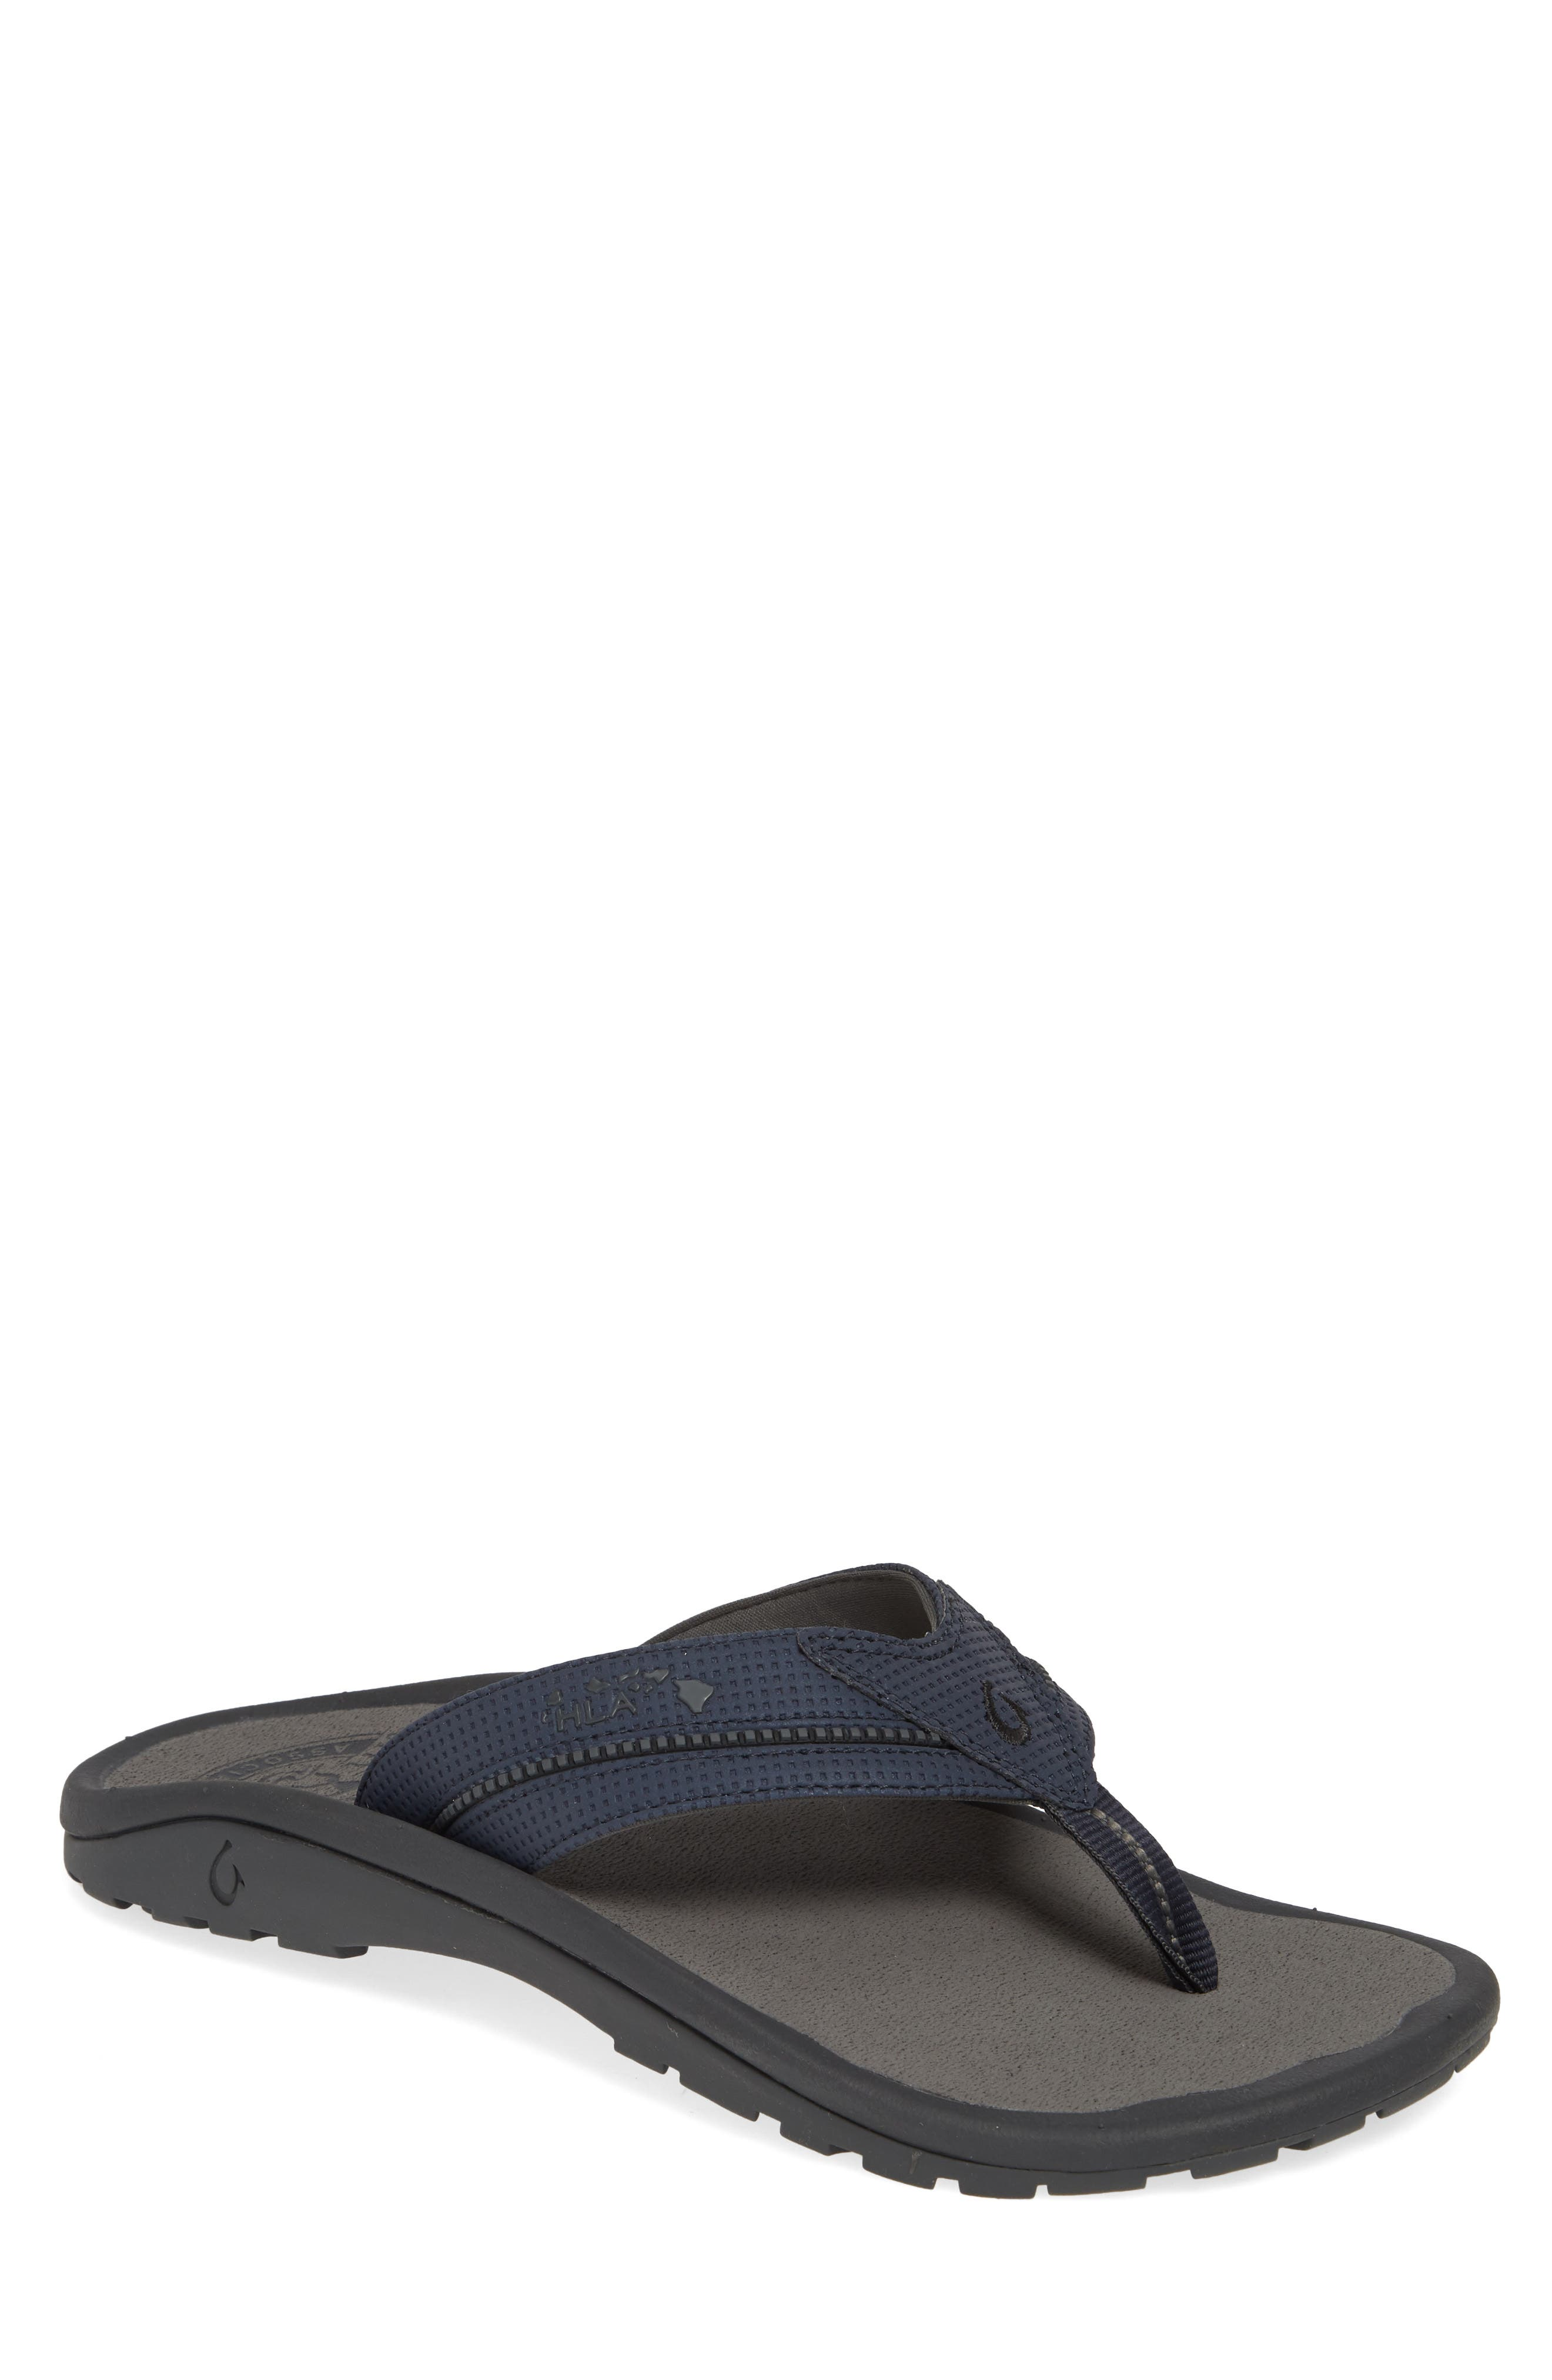 OLUKAI, 'Kia'i II' Flip Flop, Main thumbnail 1, color, TRENCH BLUE/ CHARCOAL